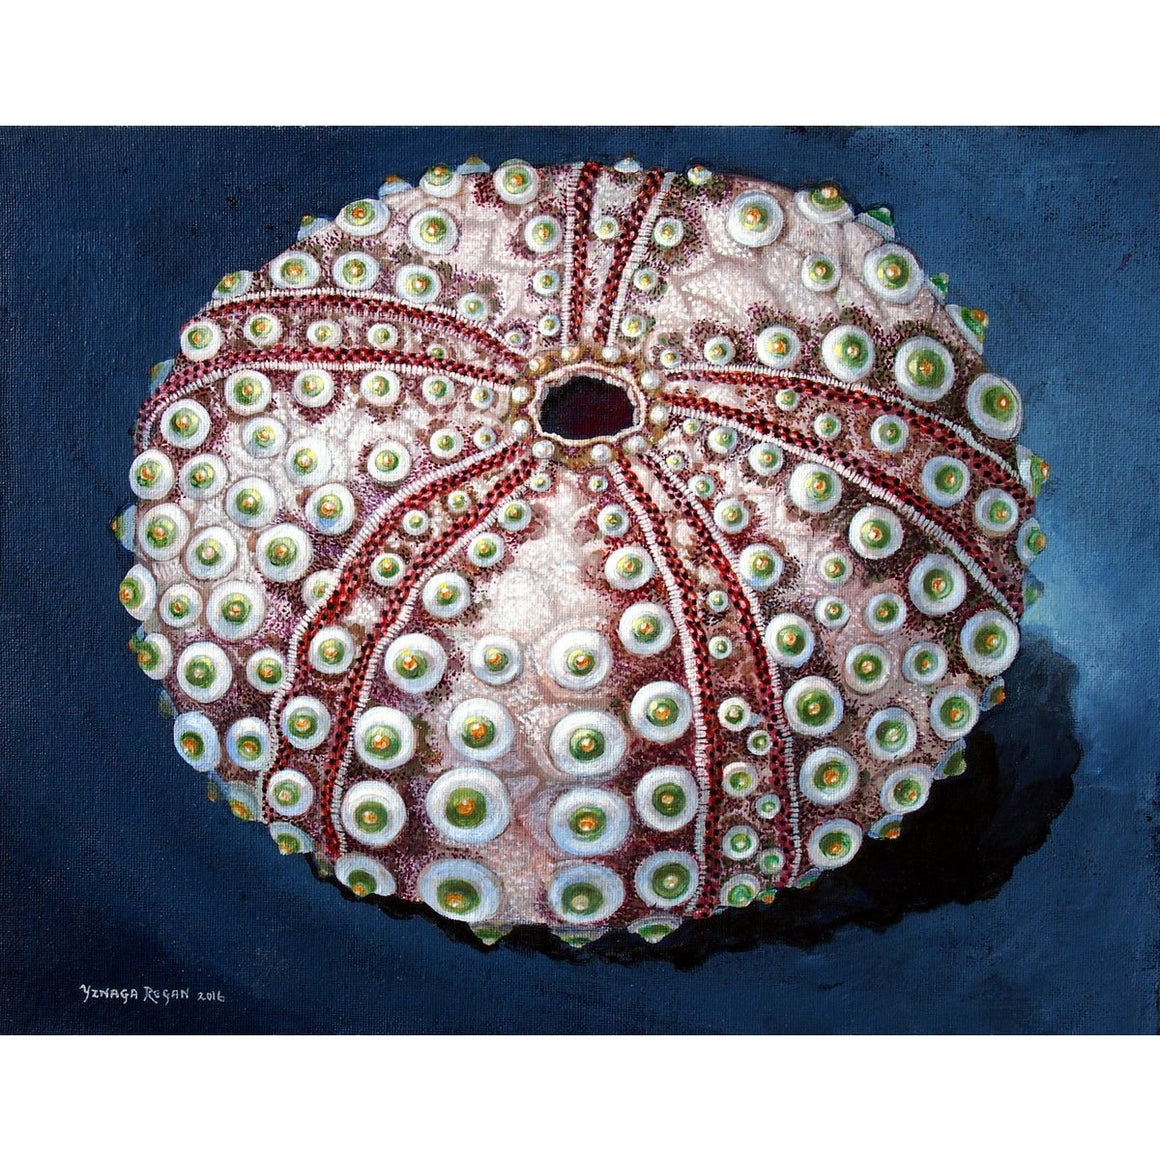 'Sea Urchin #65 - Green Pearl' Limited Edition